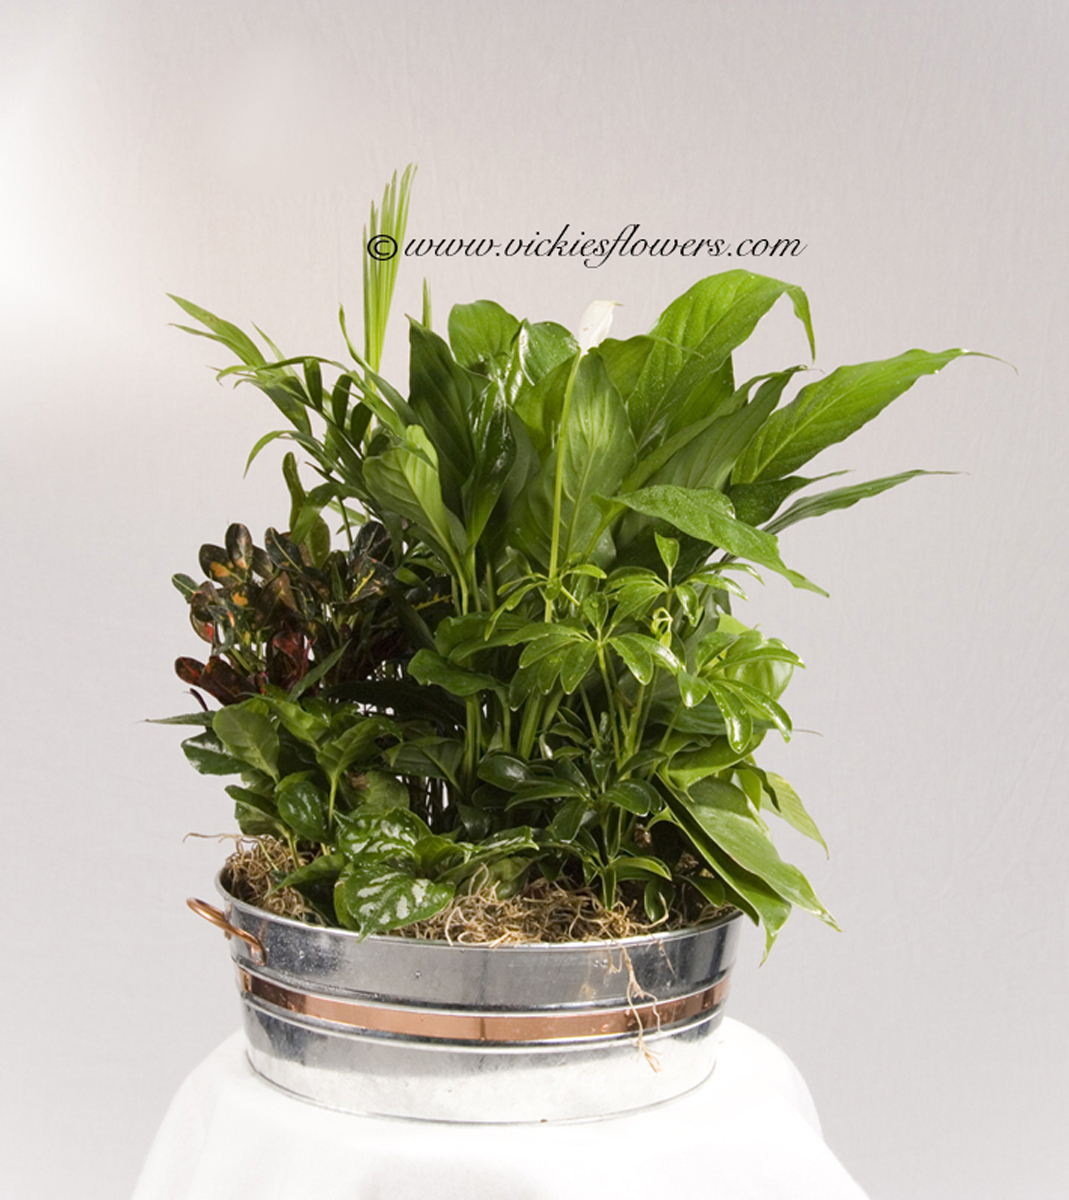 Indoor Plants For Home Office Green Plants Vickies Flowers